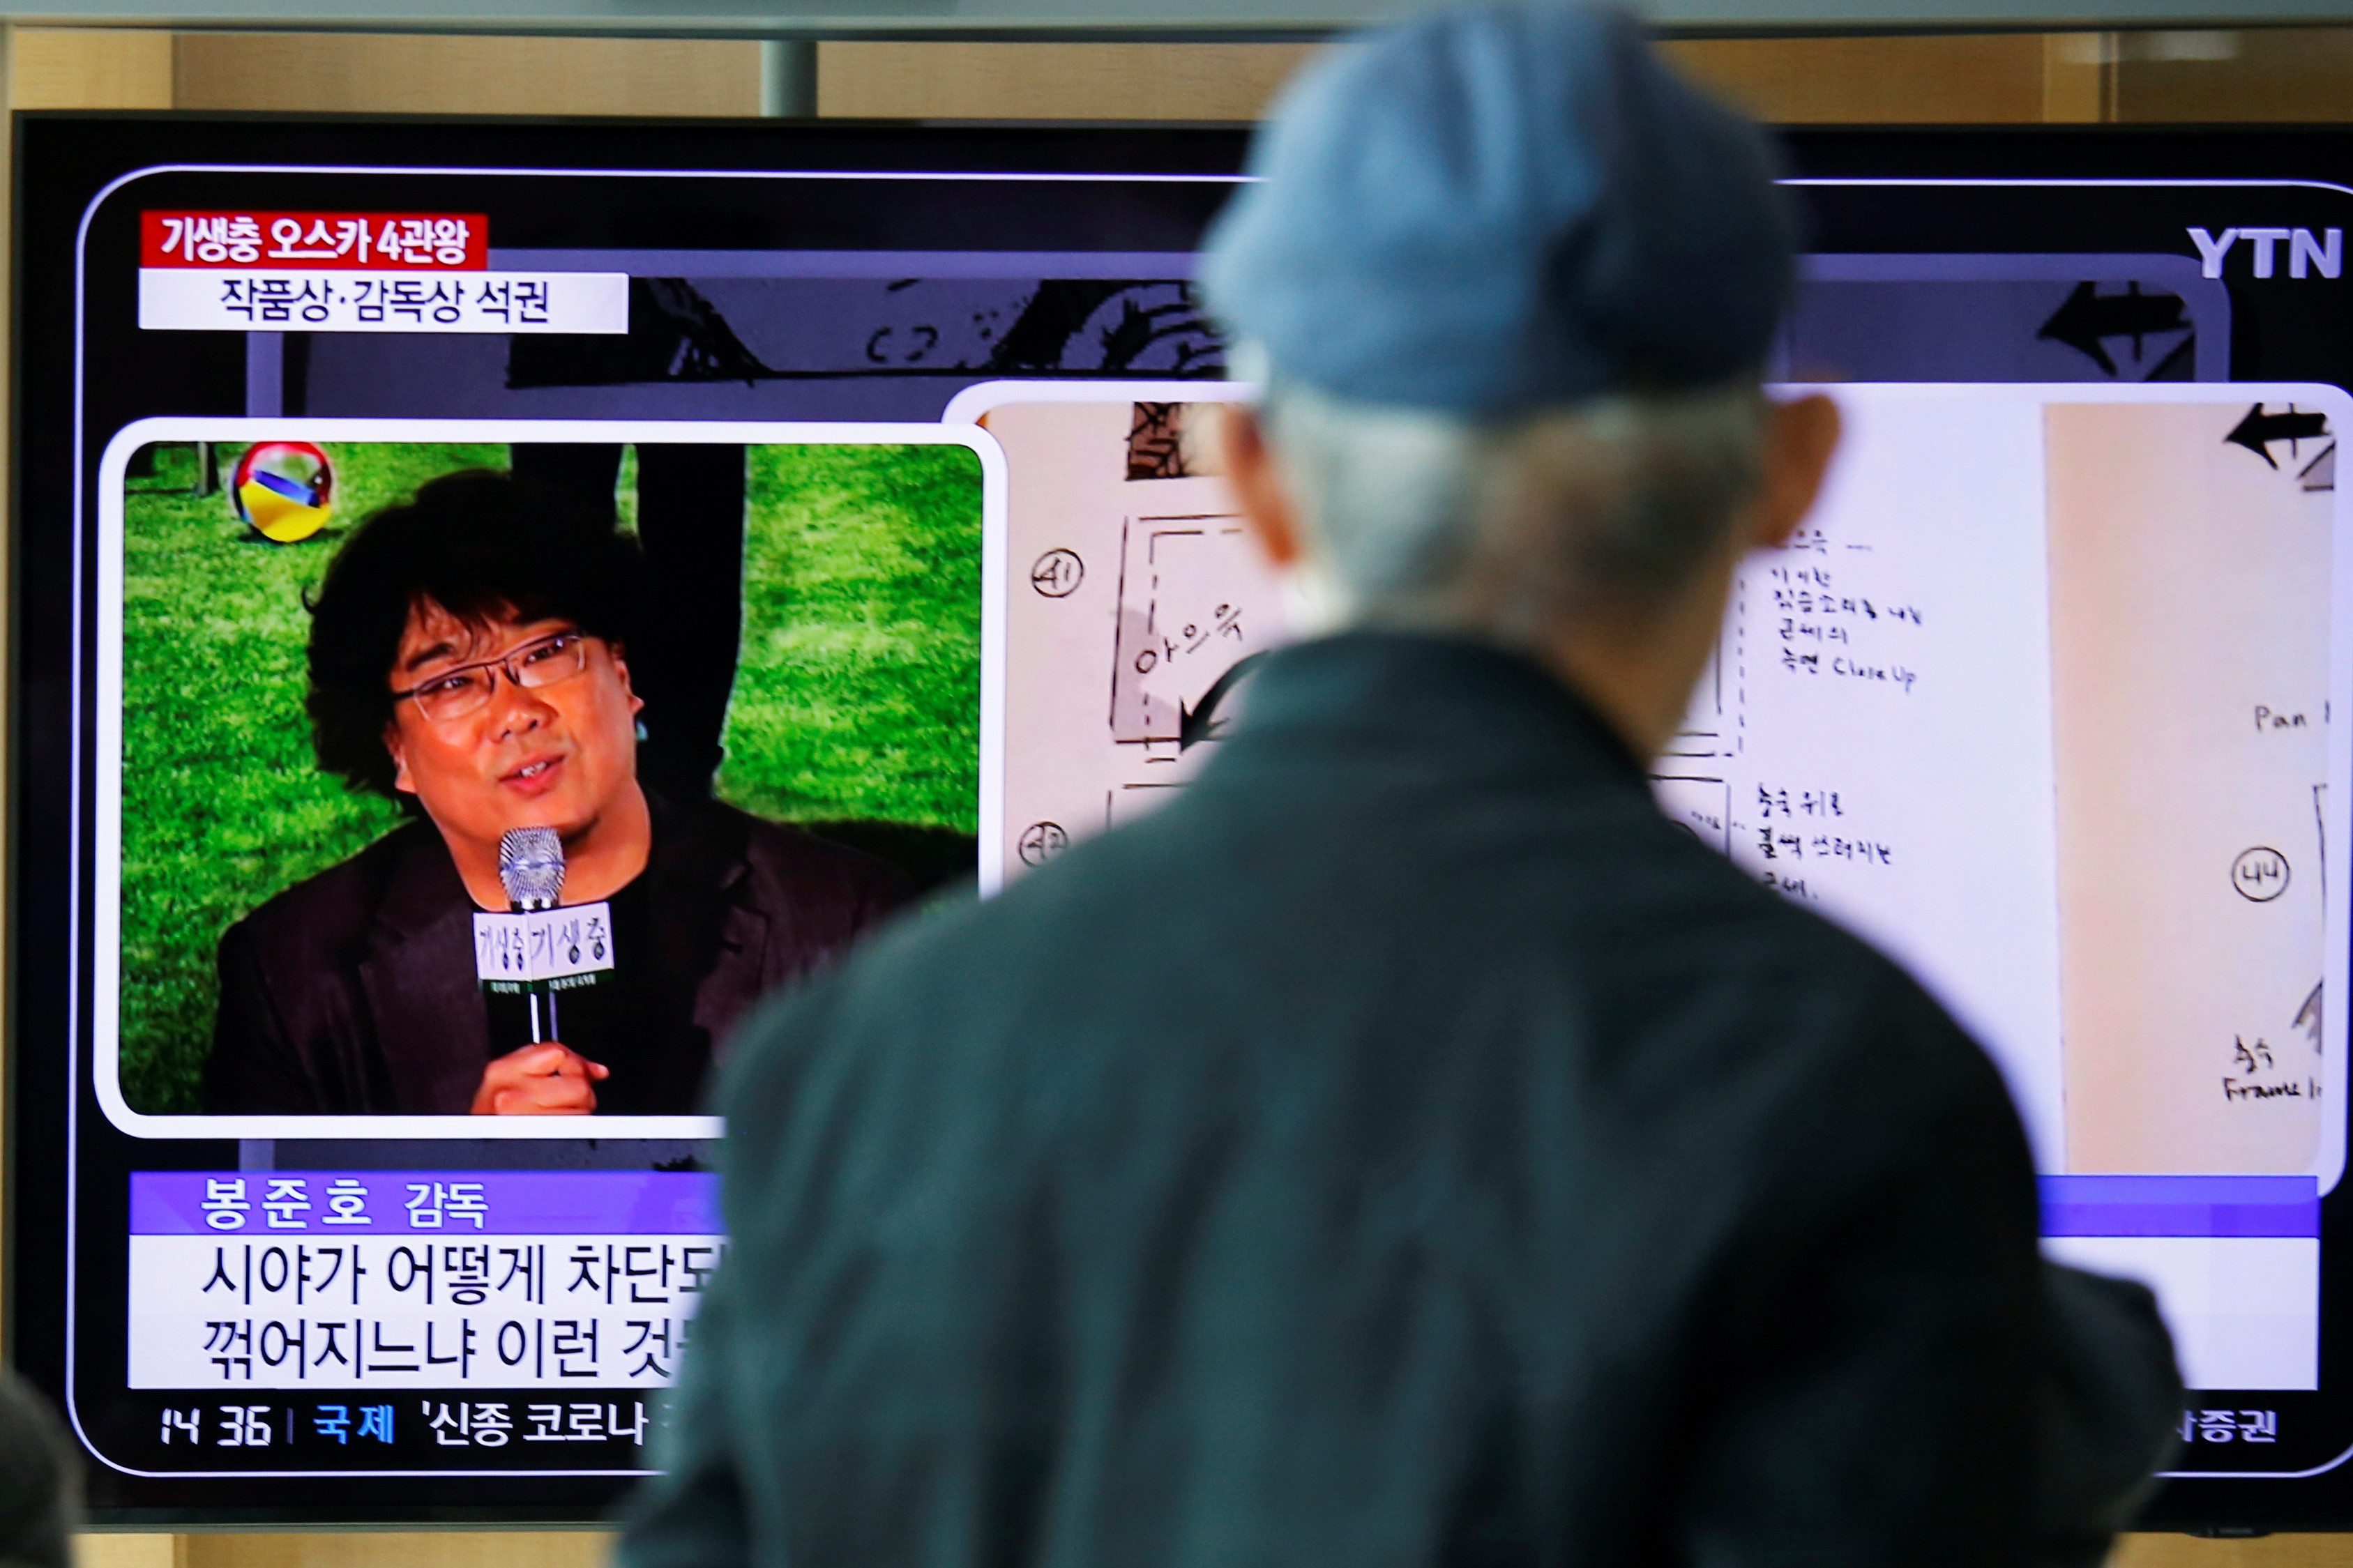 A man watches a TV broadcasting a news report onSouth Korean directorBongJoon-ho whowonfourOscarswith his film